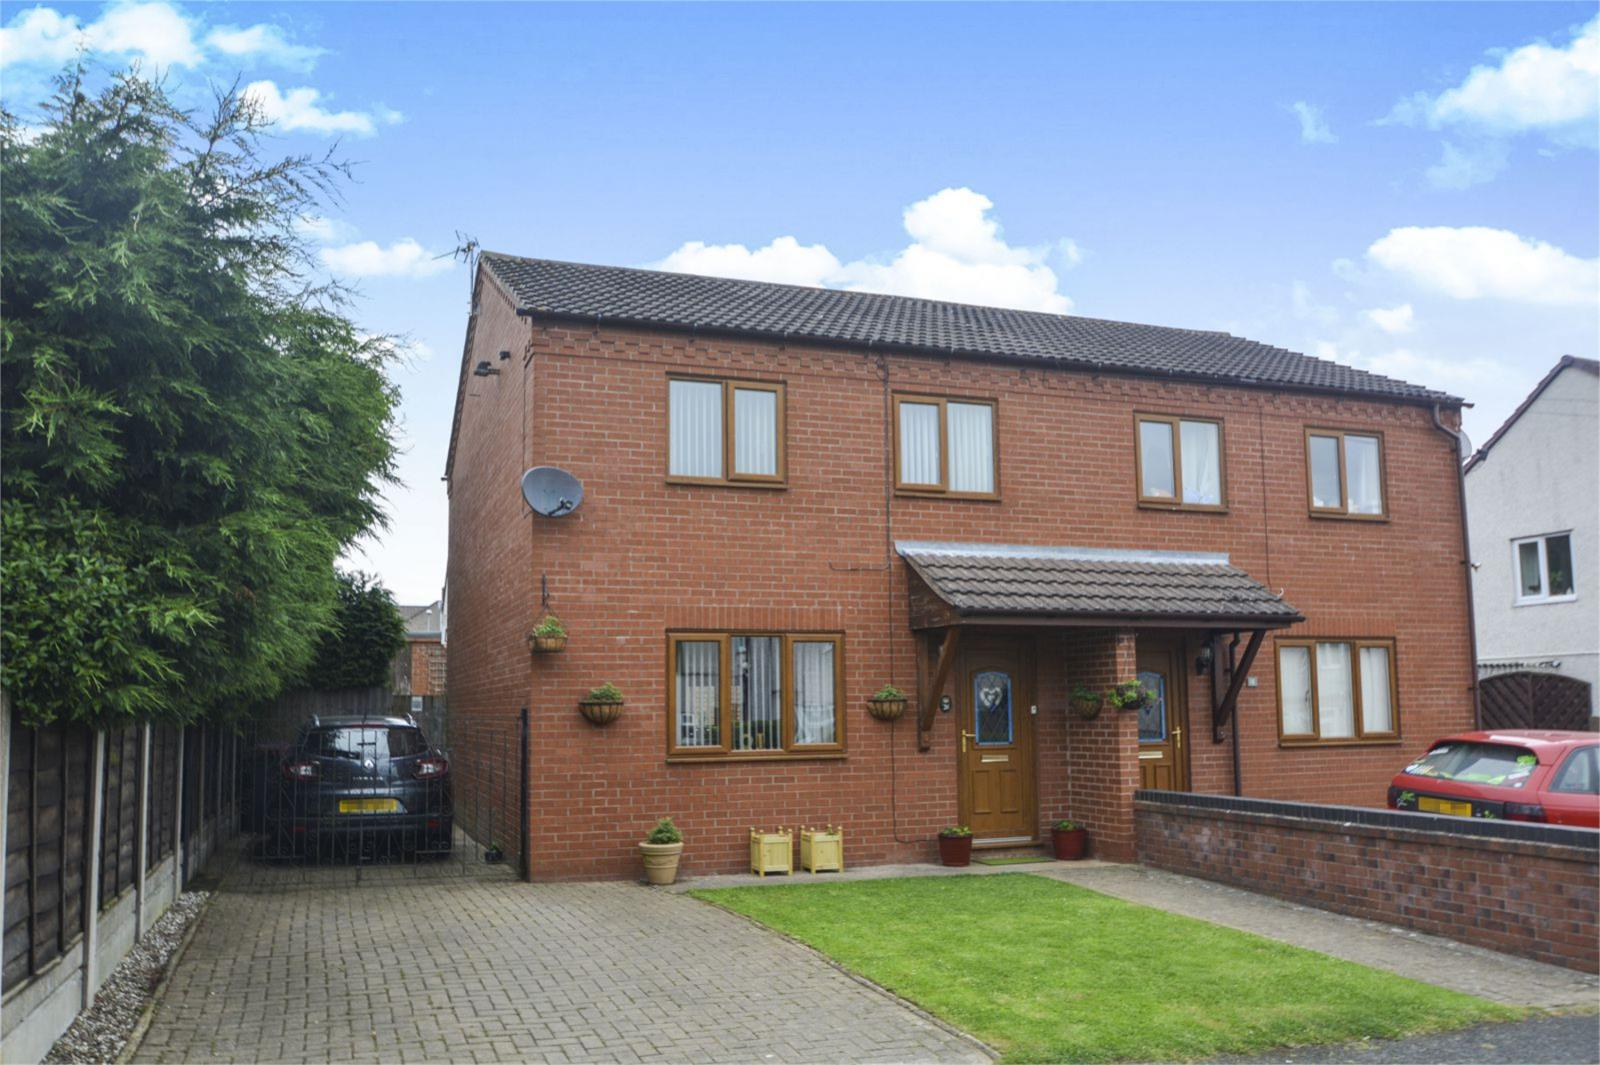 3 Bedrooms End Of Terrace House for sale in 20 Anstice Road, Madeley, Telford, Shropshire, TF7